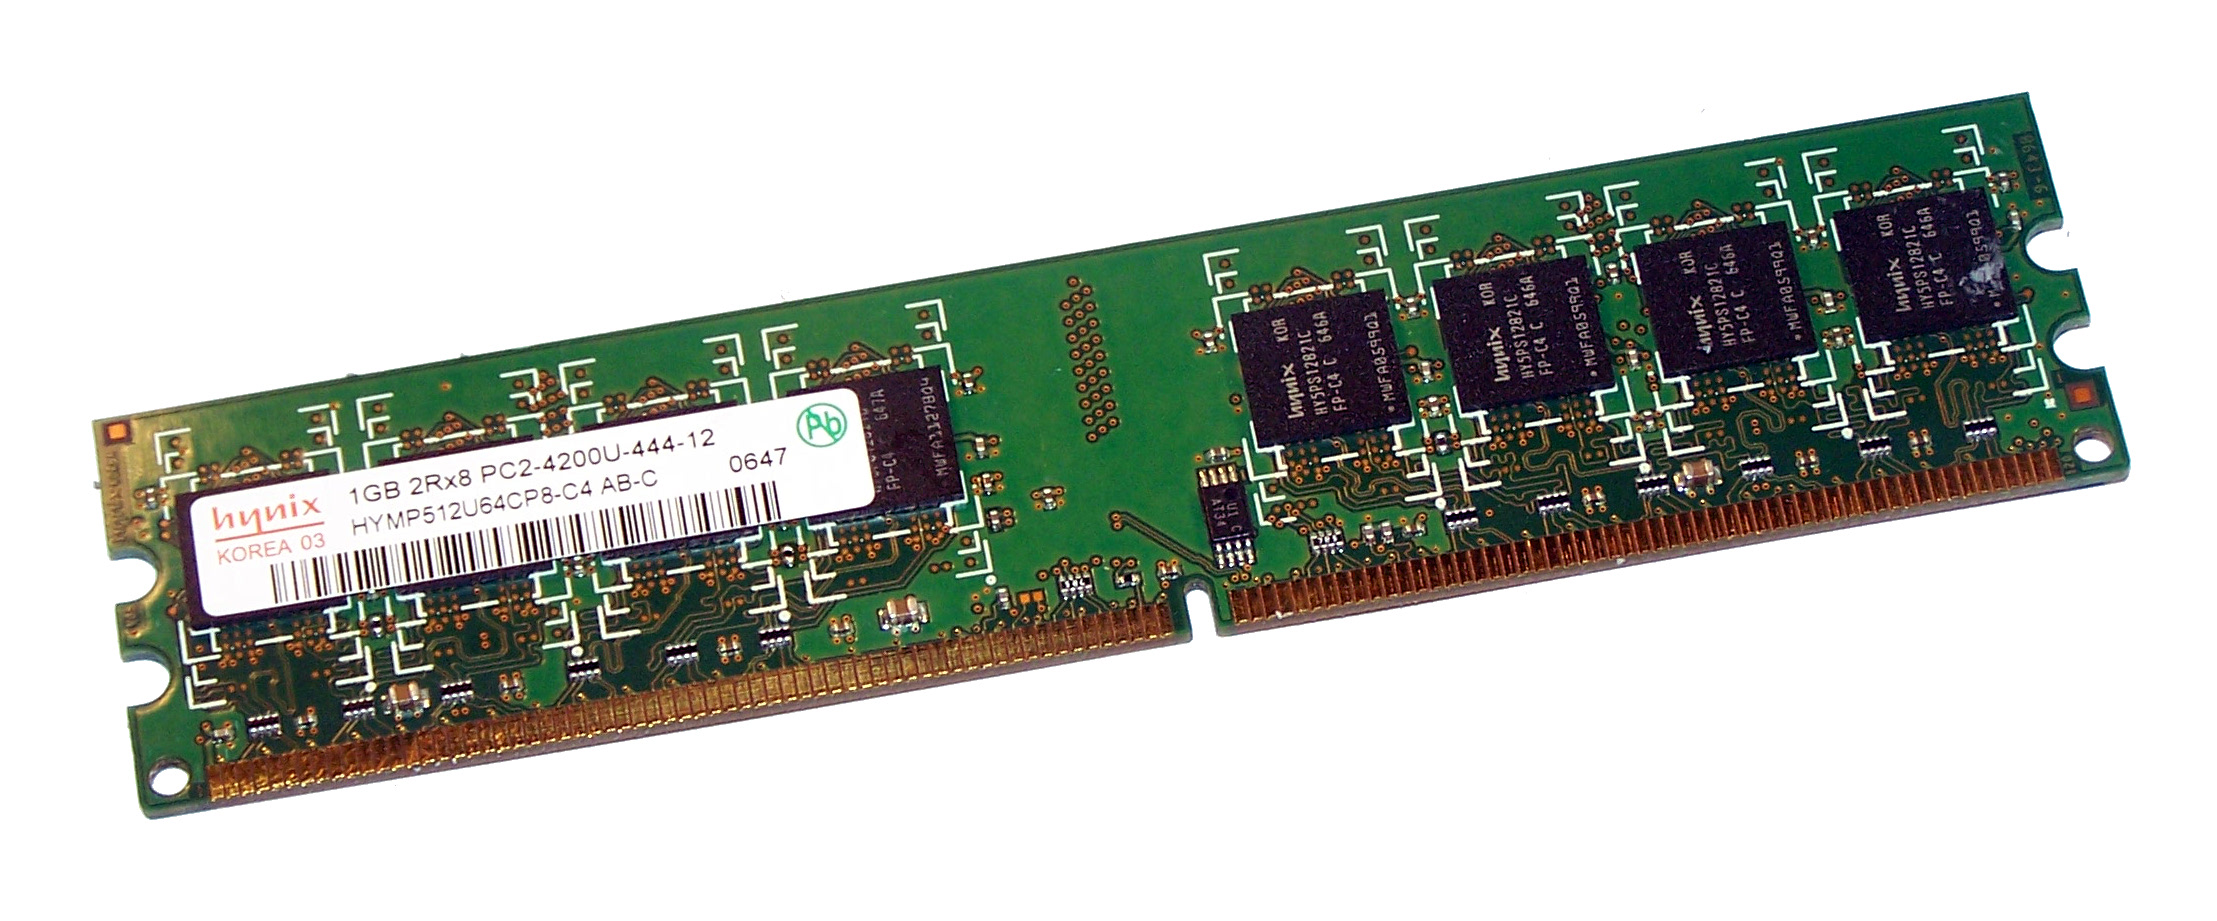 1GB DDR2 DUAL-CHANNEL 533MHZ Dimm Memory